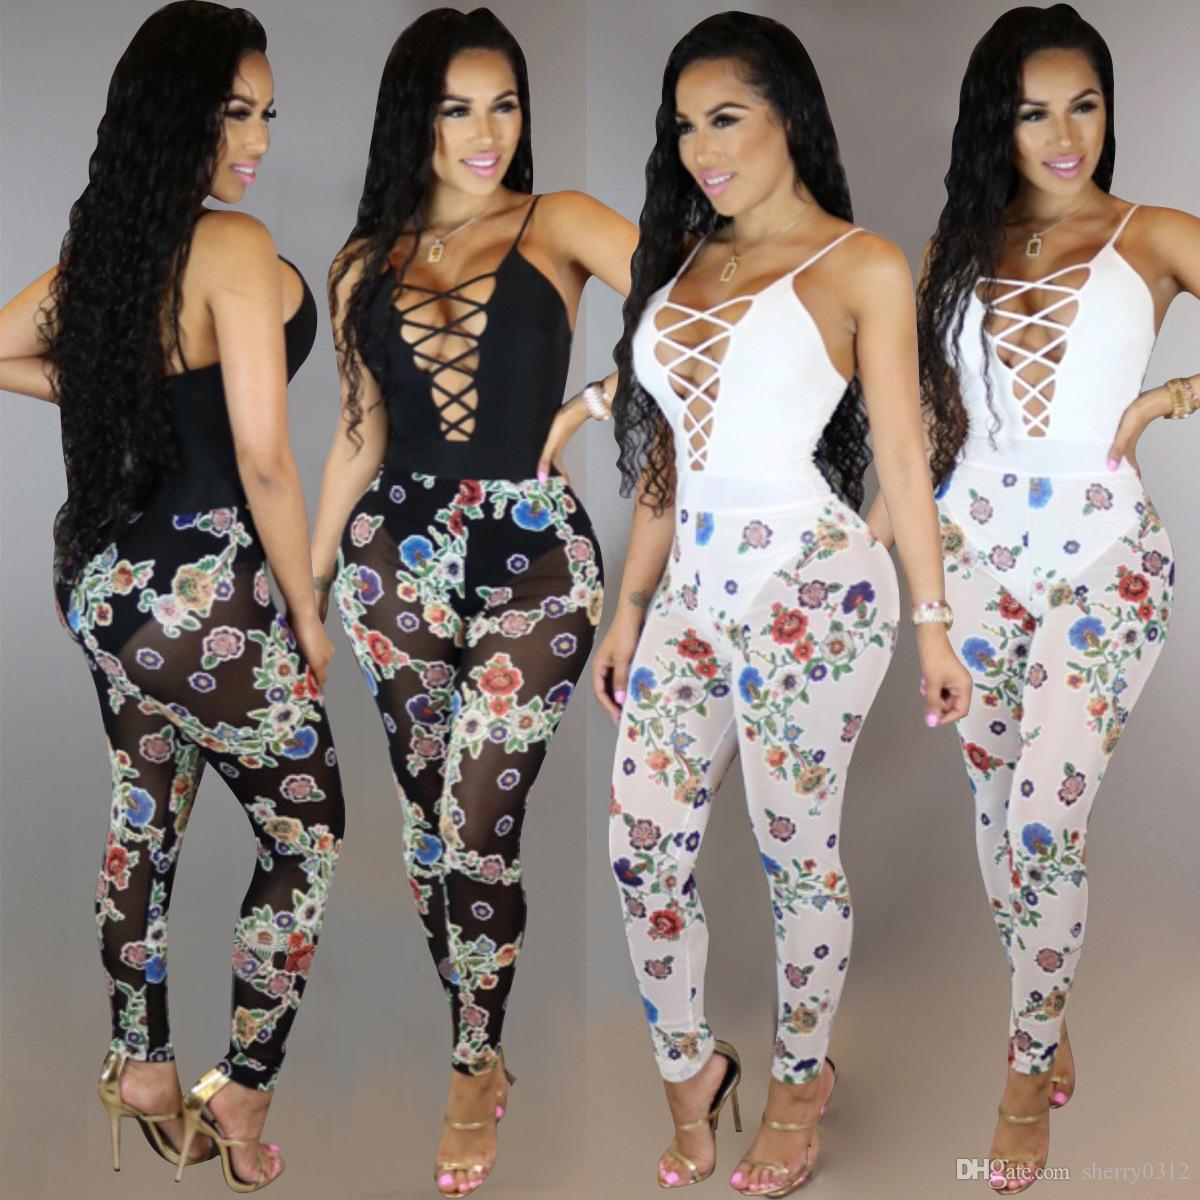 2017 Translucent Mesh Sexy Printed Jumpsuit Overalls Vest Rompers ... d8bf2c9d2